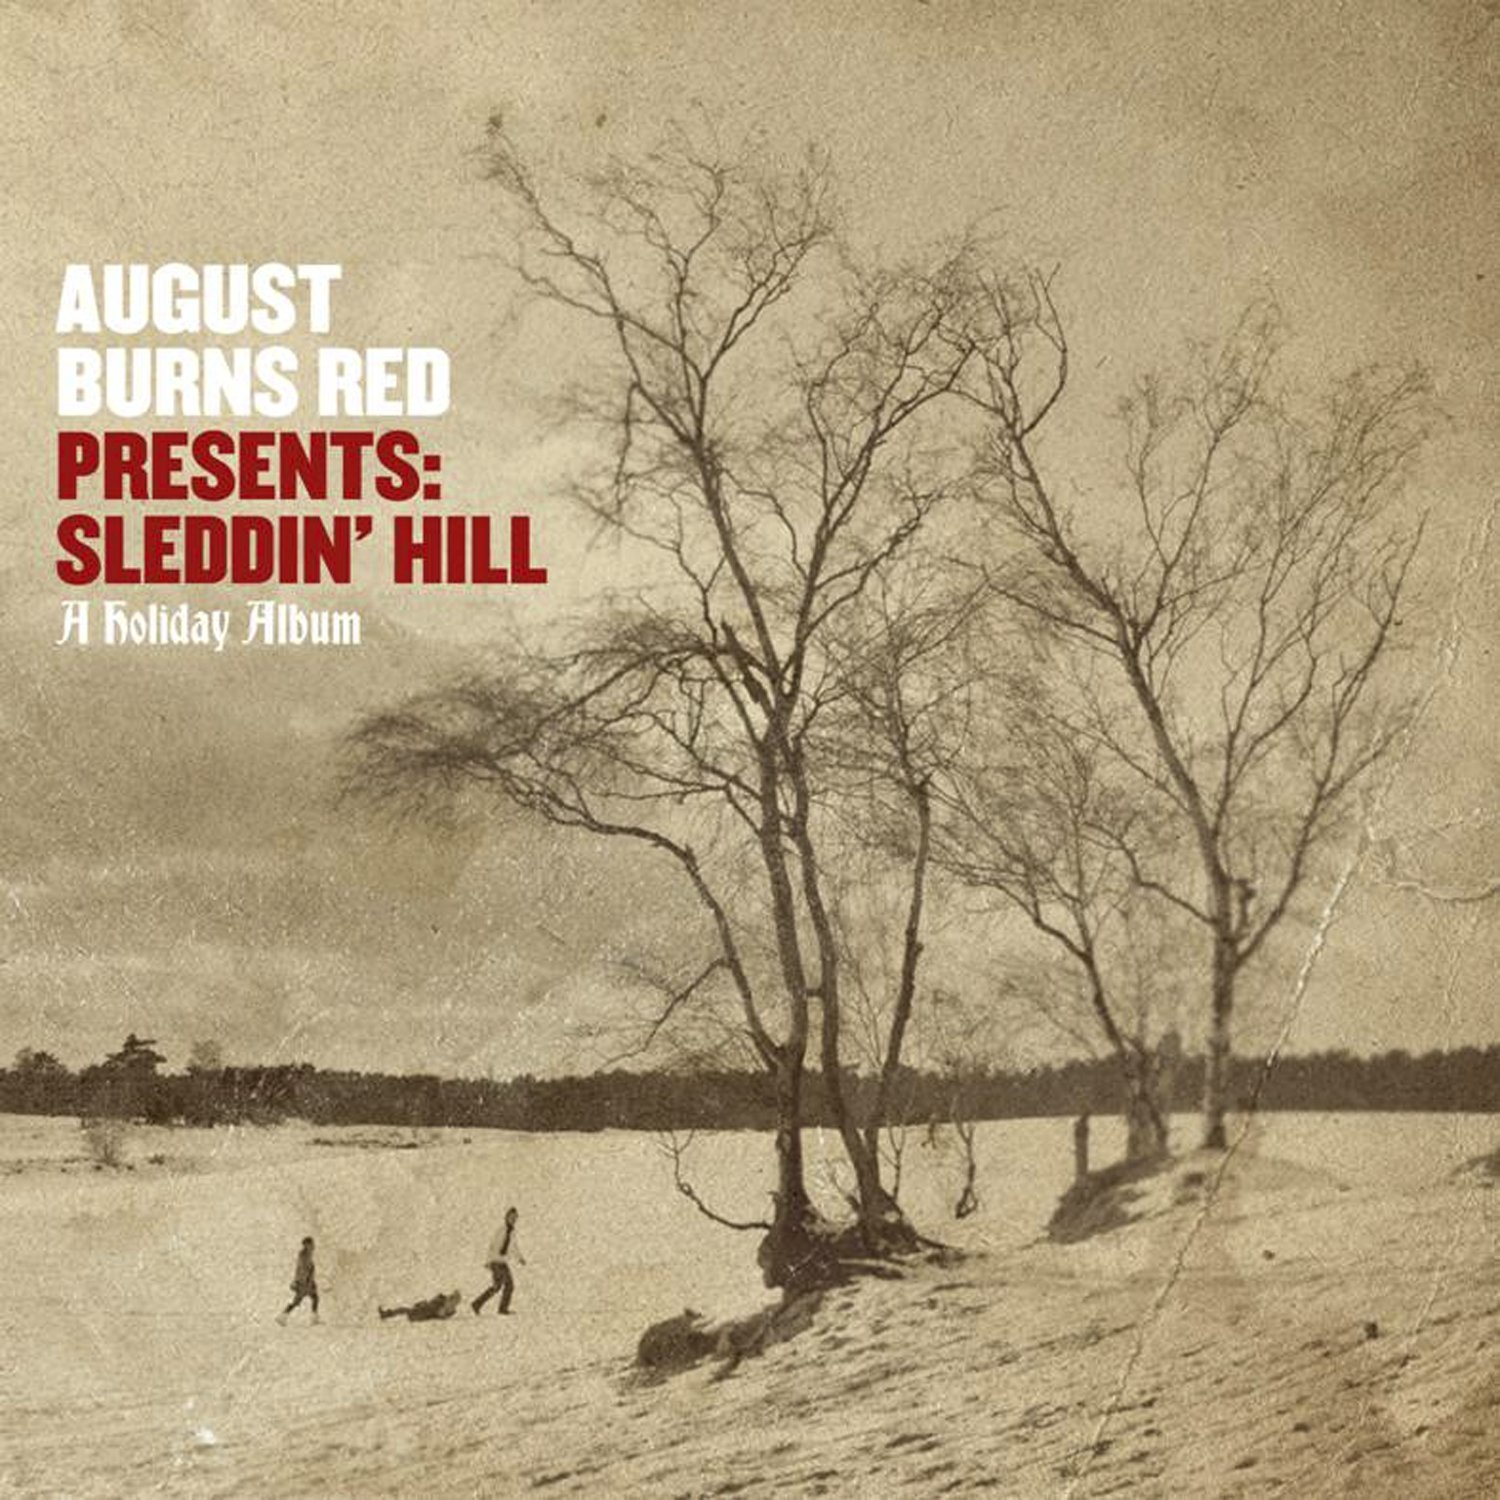 august.burns.red